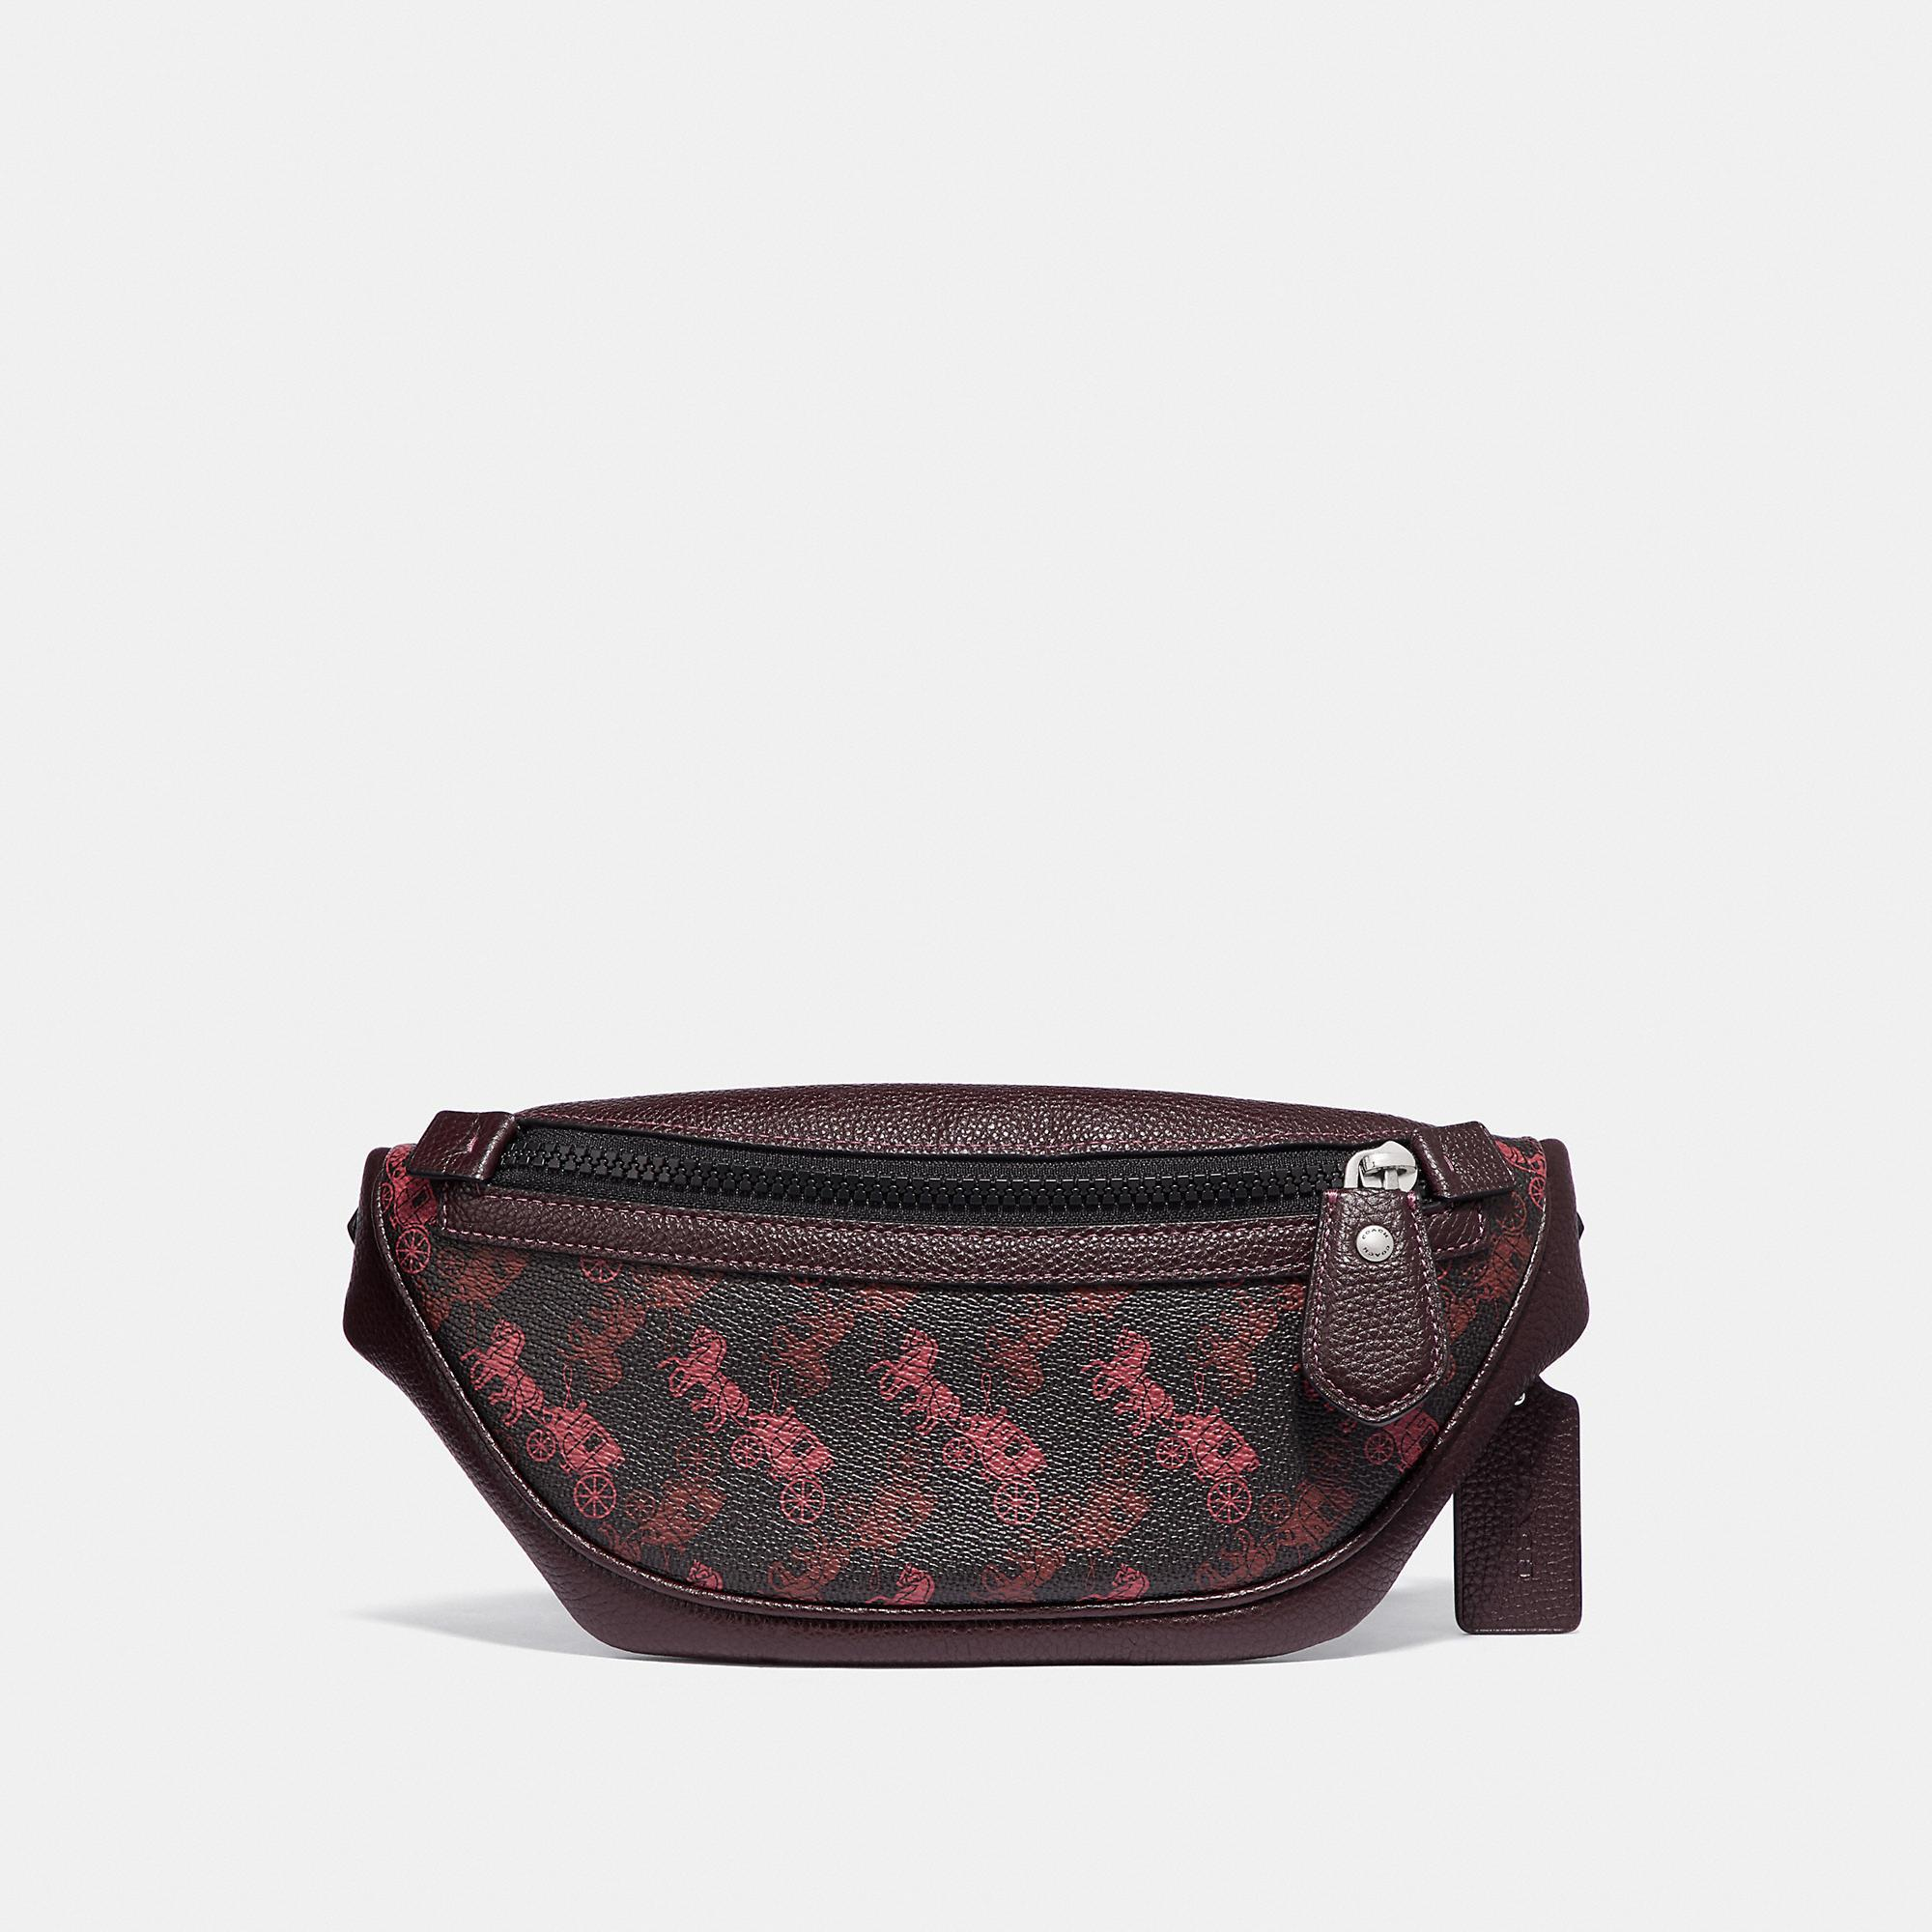 Rivington Belt Bag 7 With Horse And Carriage Print